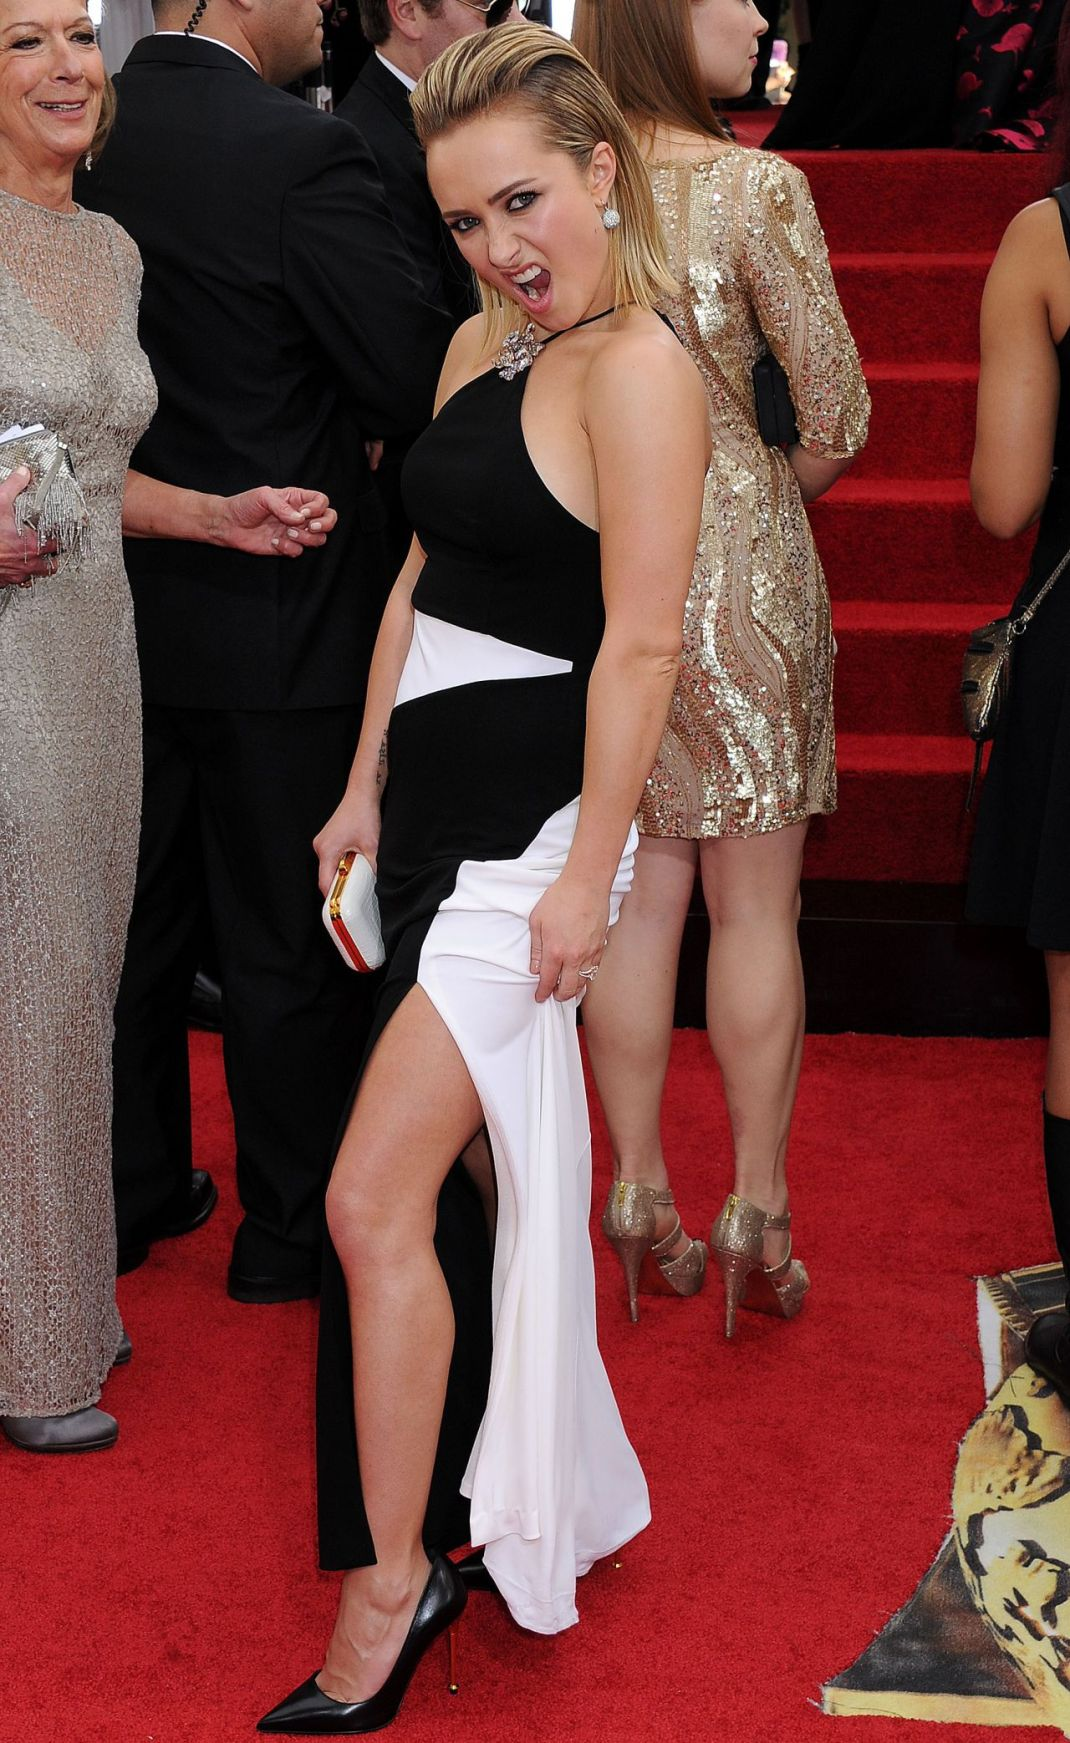 hayden-panettiere-glamcam-360-at-the-golden-globe-awards-january-2014_1